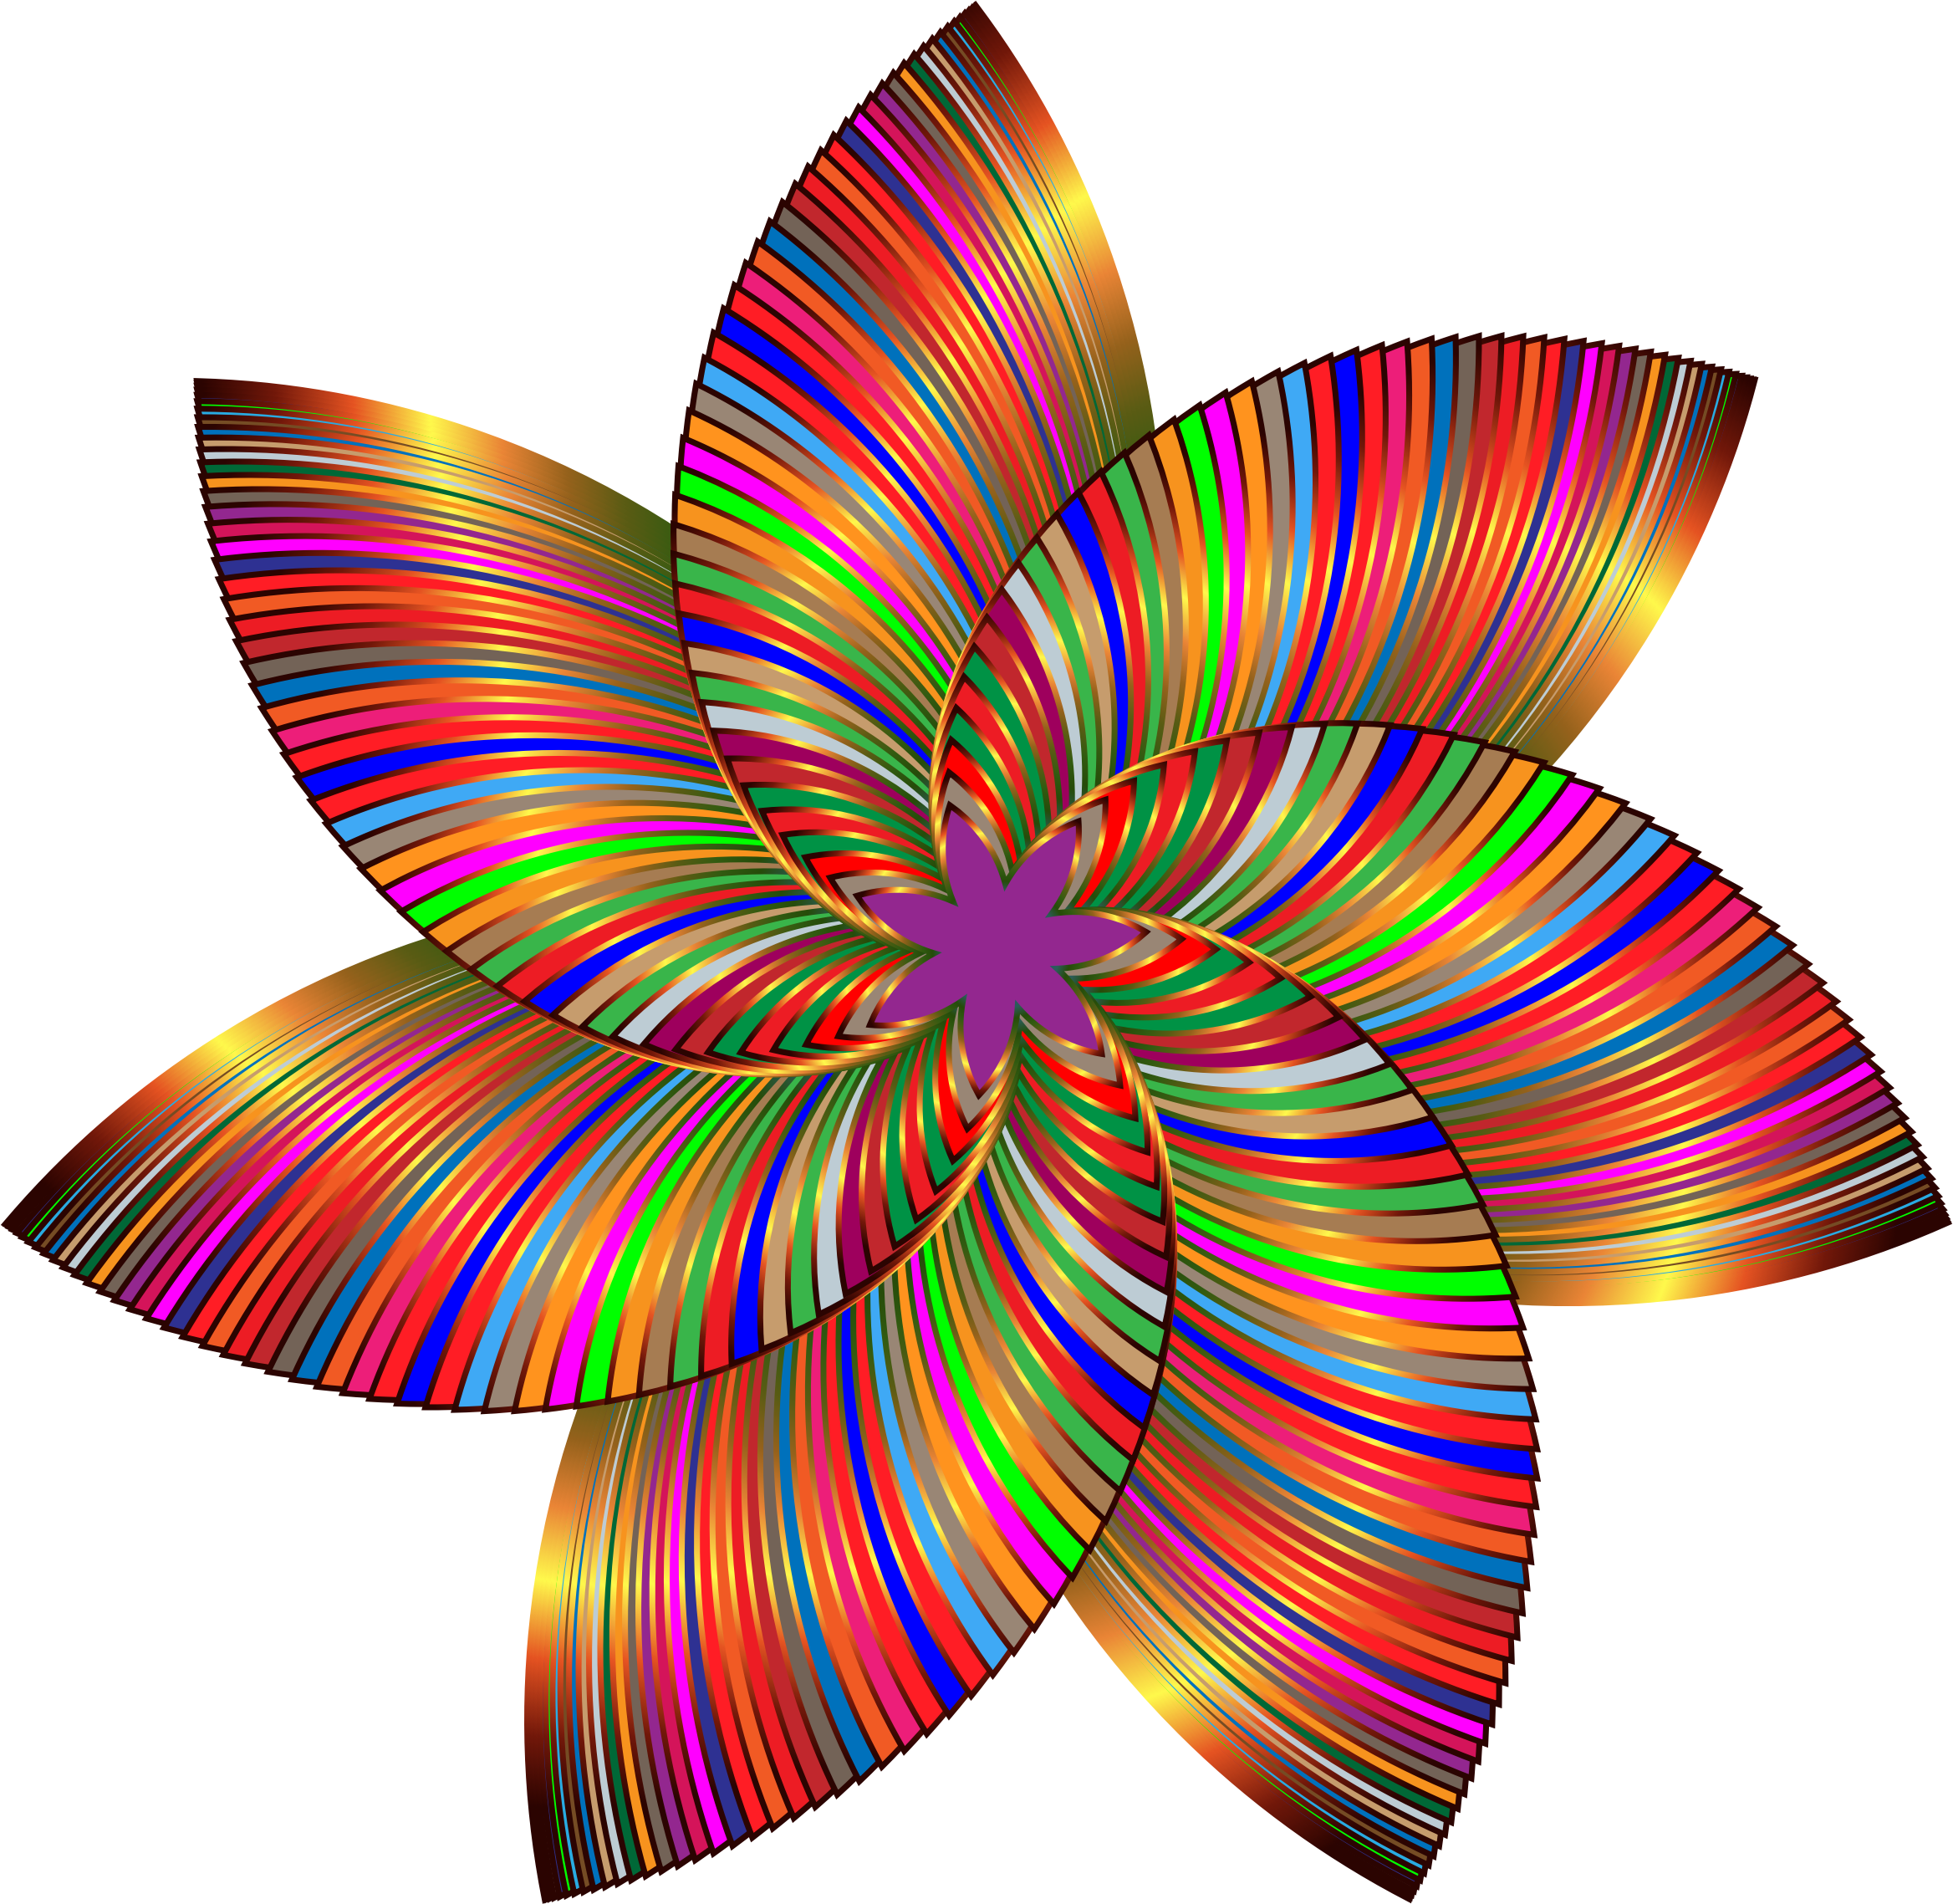 Colorful Flower Line Art 3 By Gdj